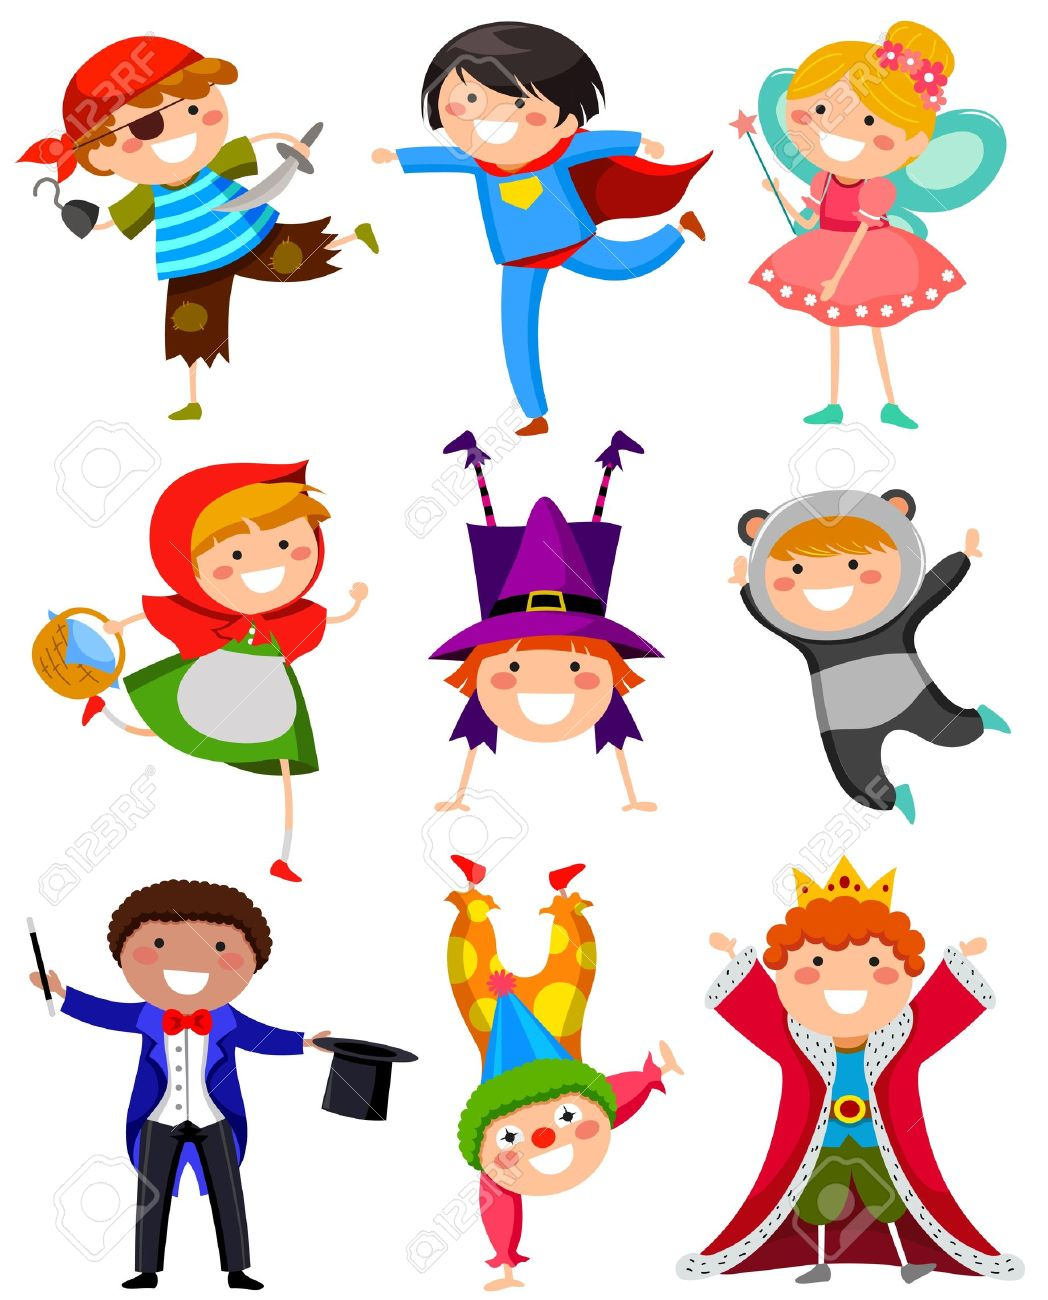 Free download best on. Costume clipart children's